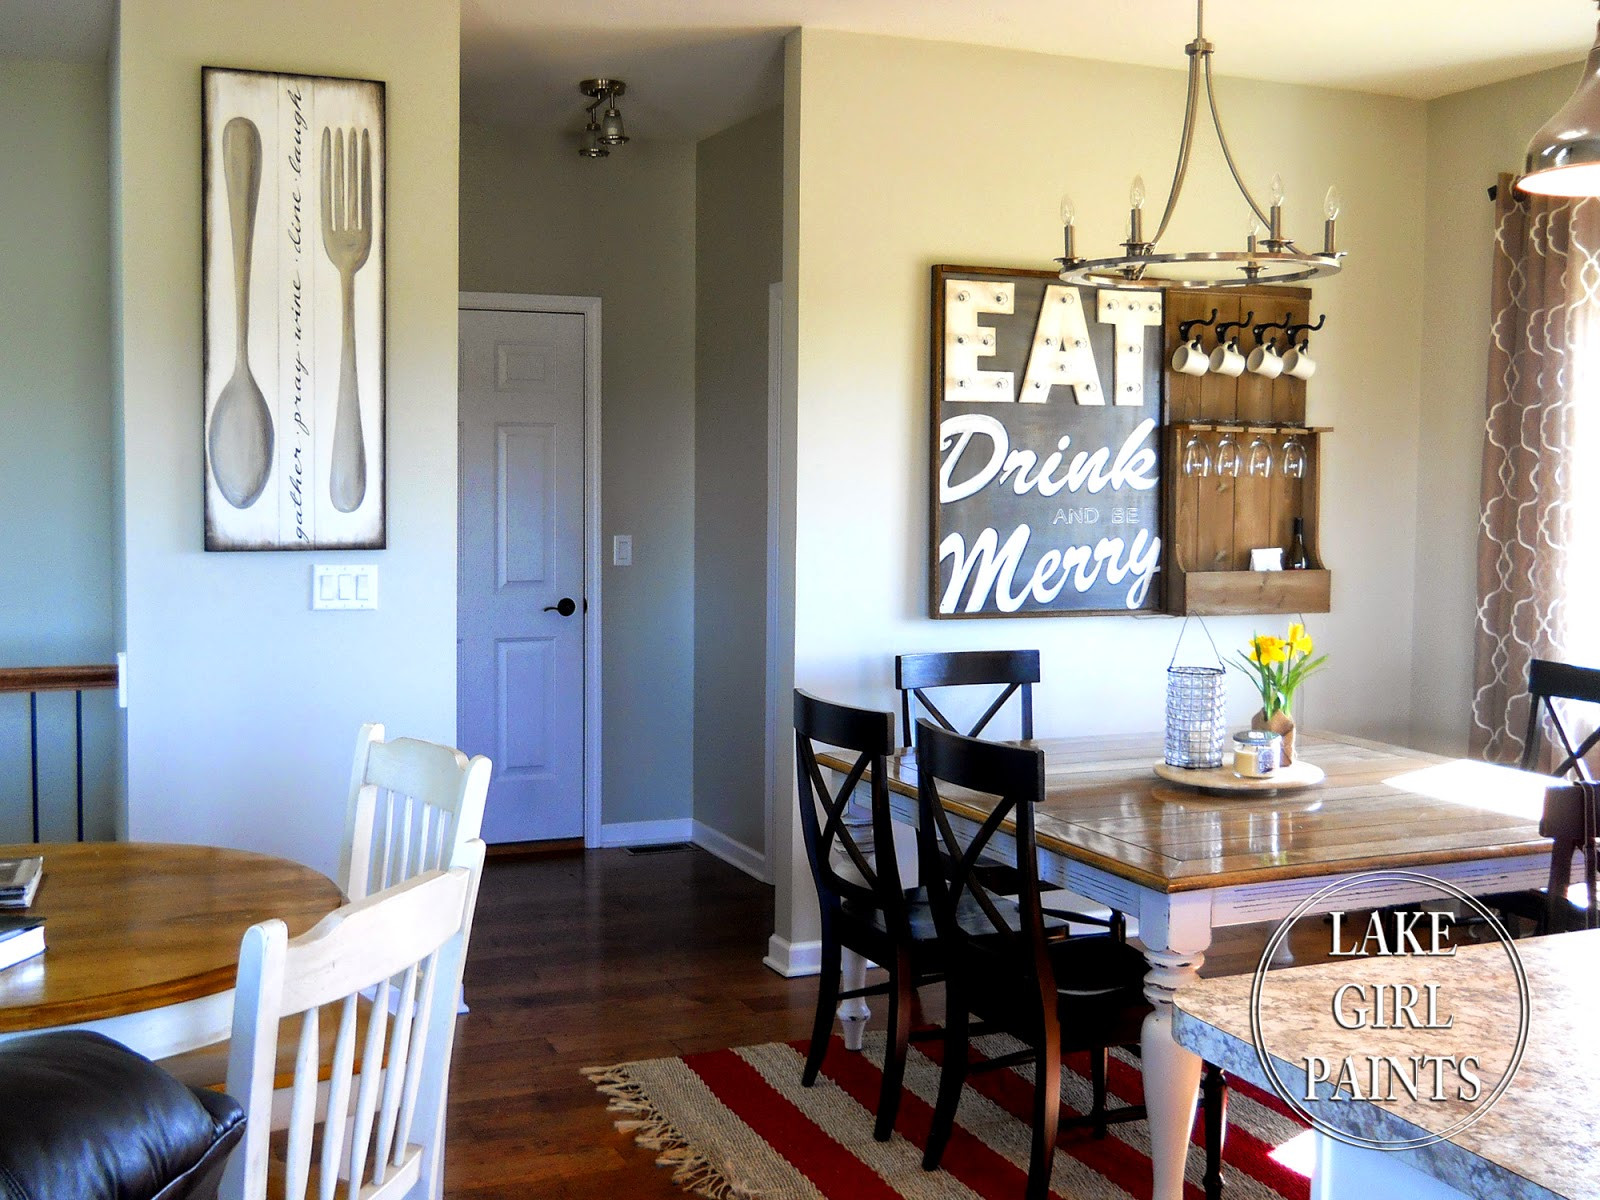 Best ideas about Dining Room Wall Art . Save or Pin Lake Girl Paints Making Dining Room Wall Art Now.